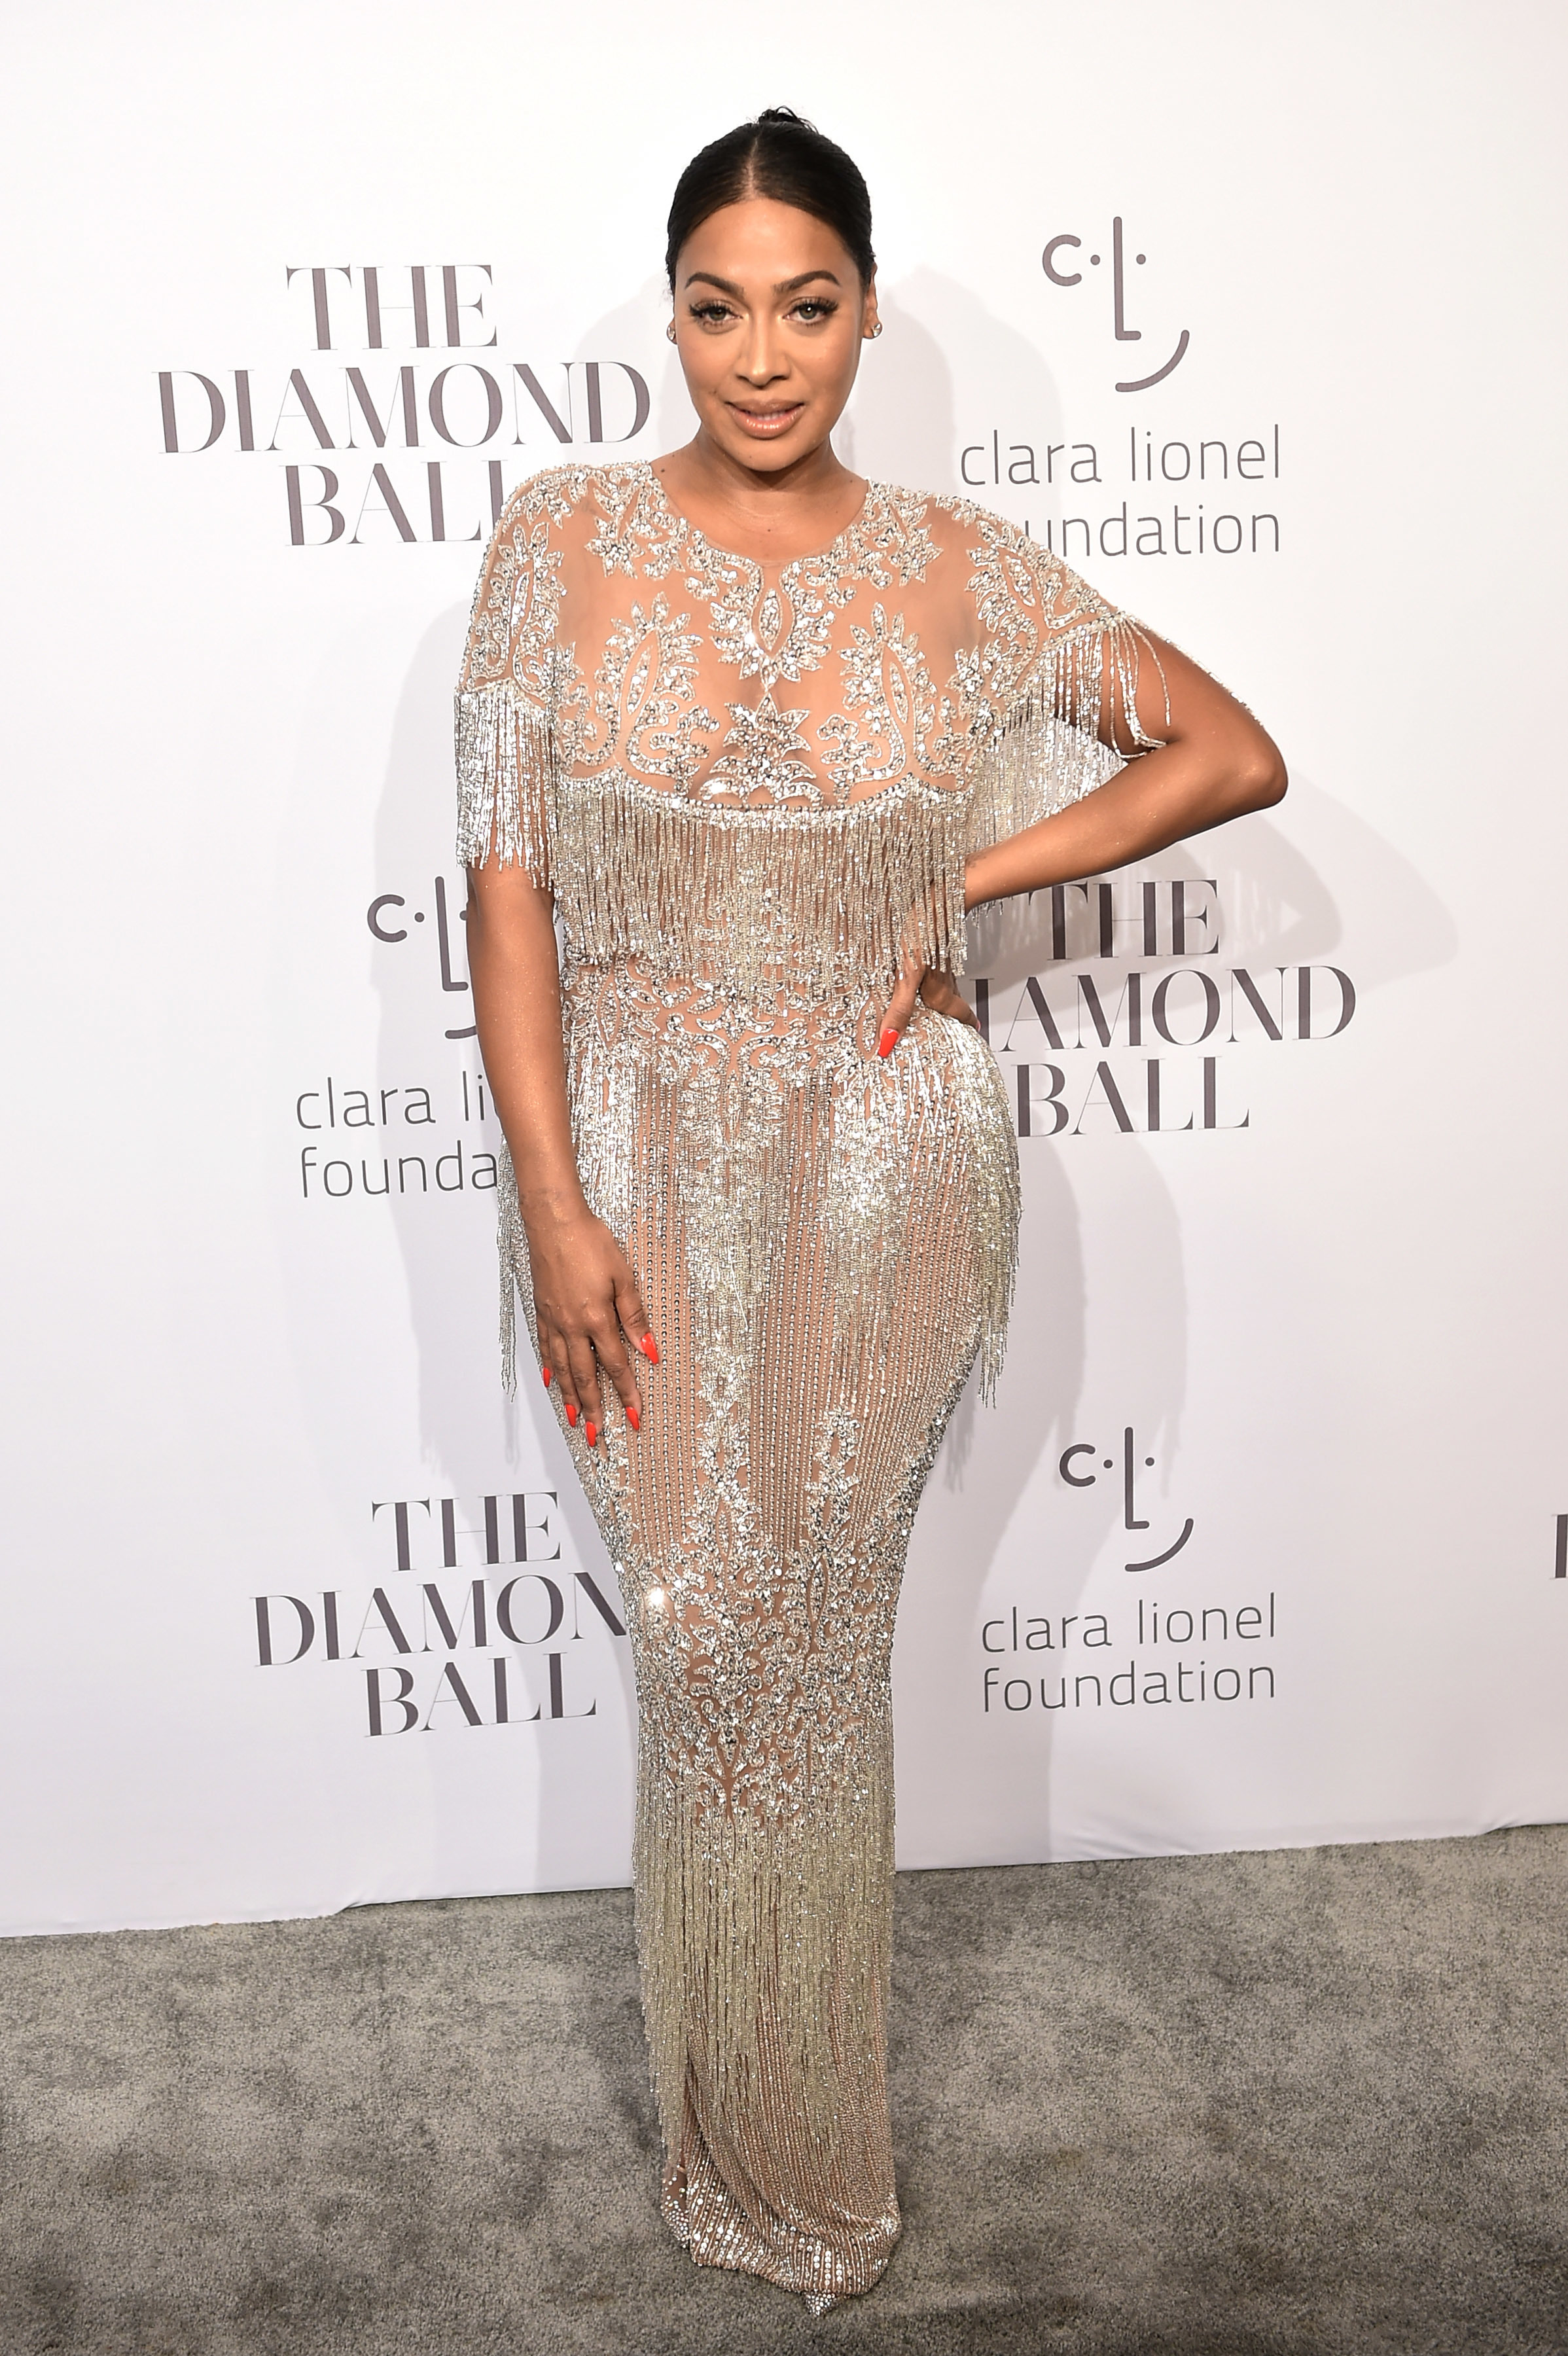 La La Anthony attends Rihanna's 3rd Annual Clara Lionel Foundation Diamond Ball in New York City on Sept. 14, 2017.